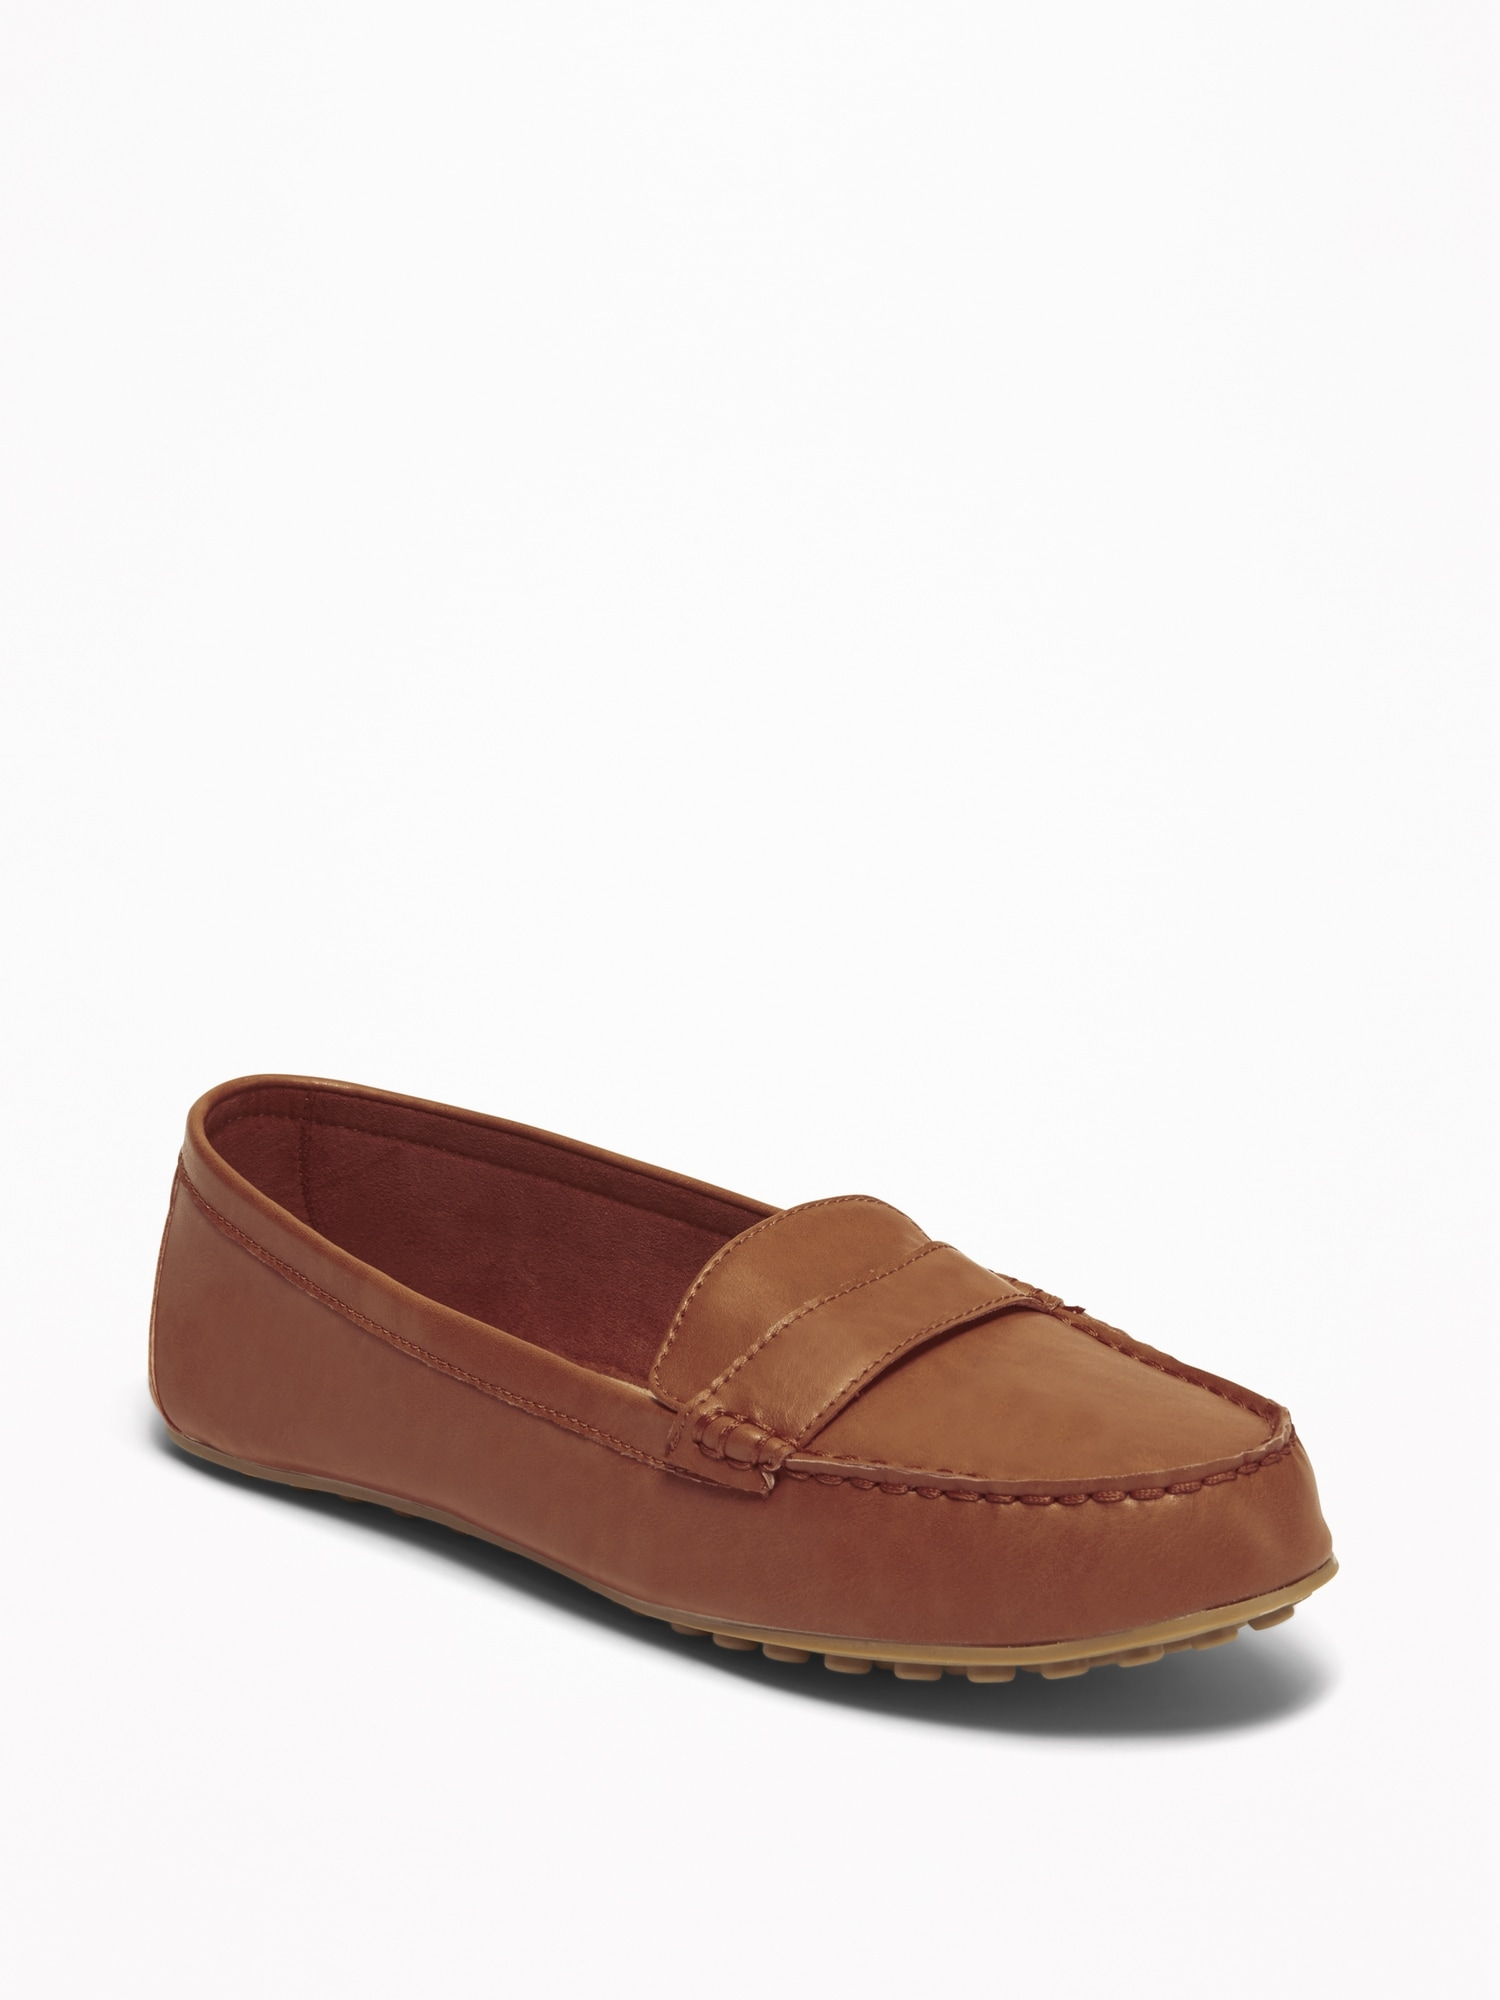 Faux-Leather Driving Moccasins for